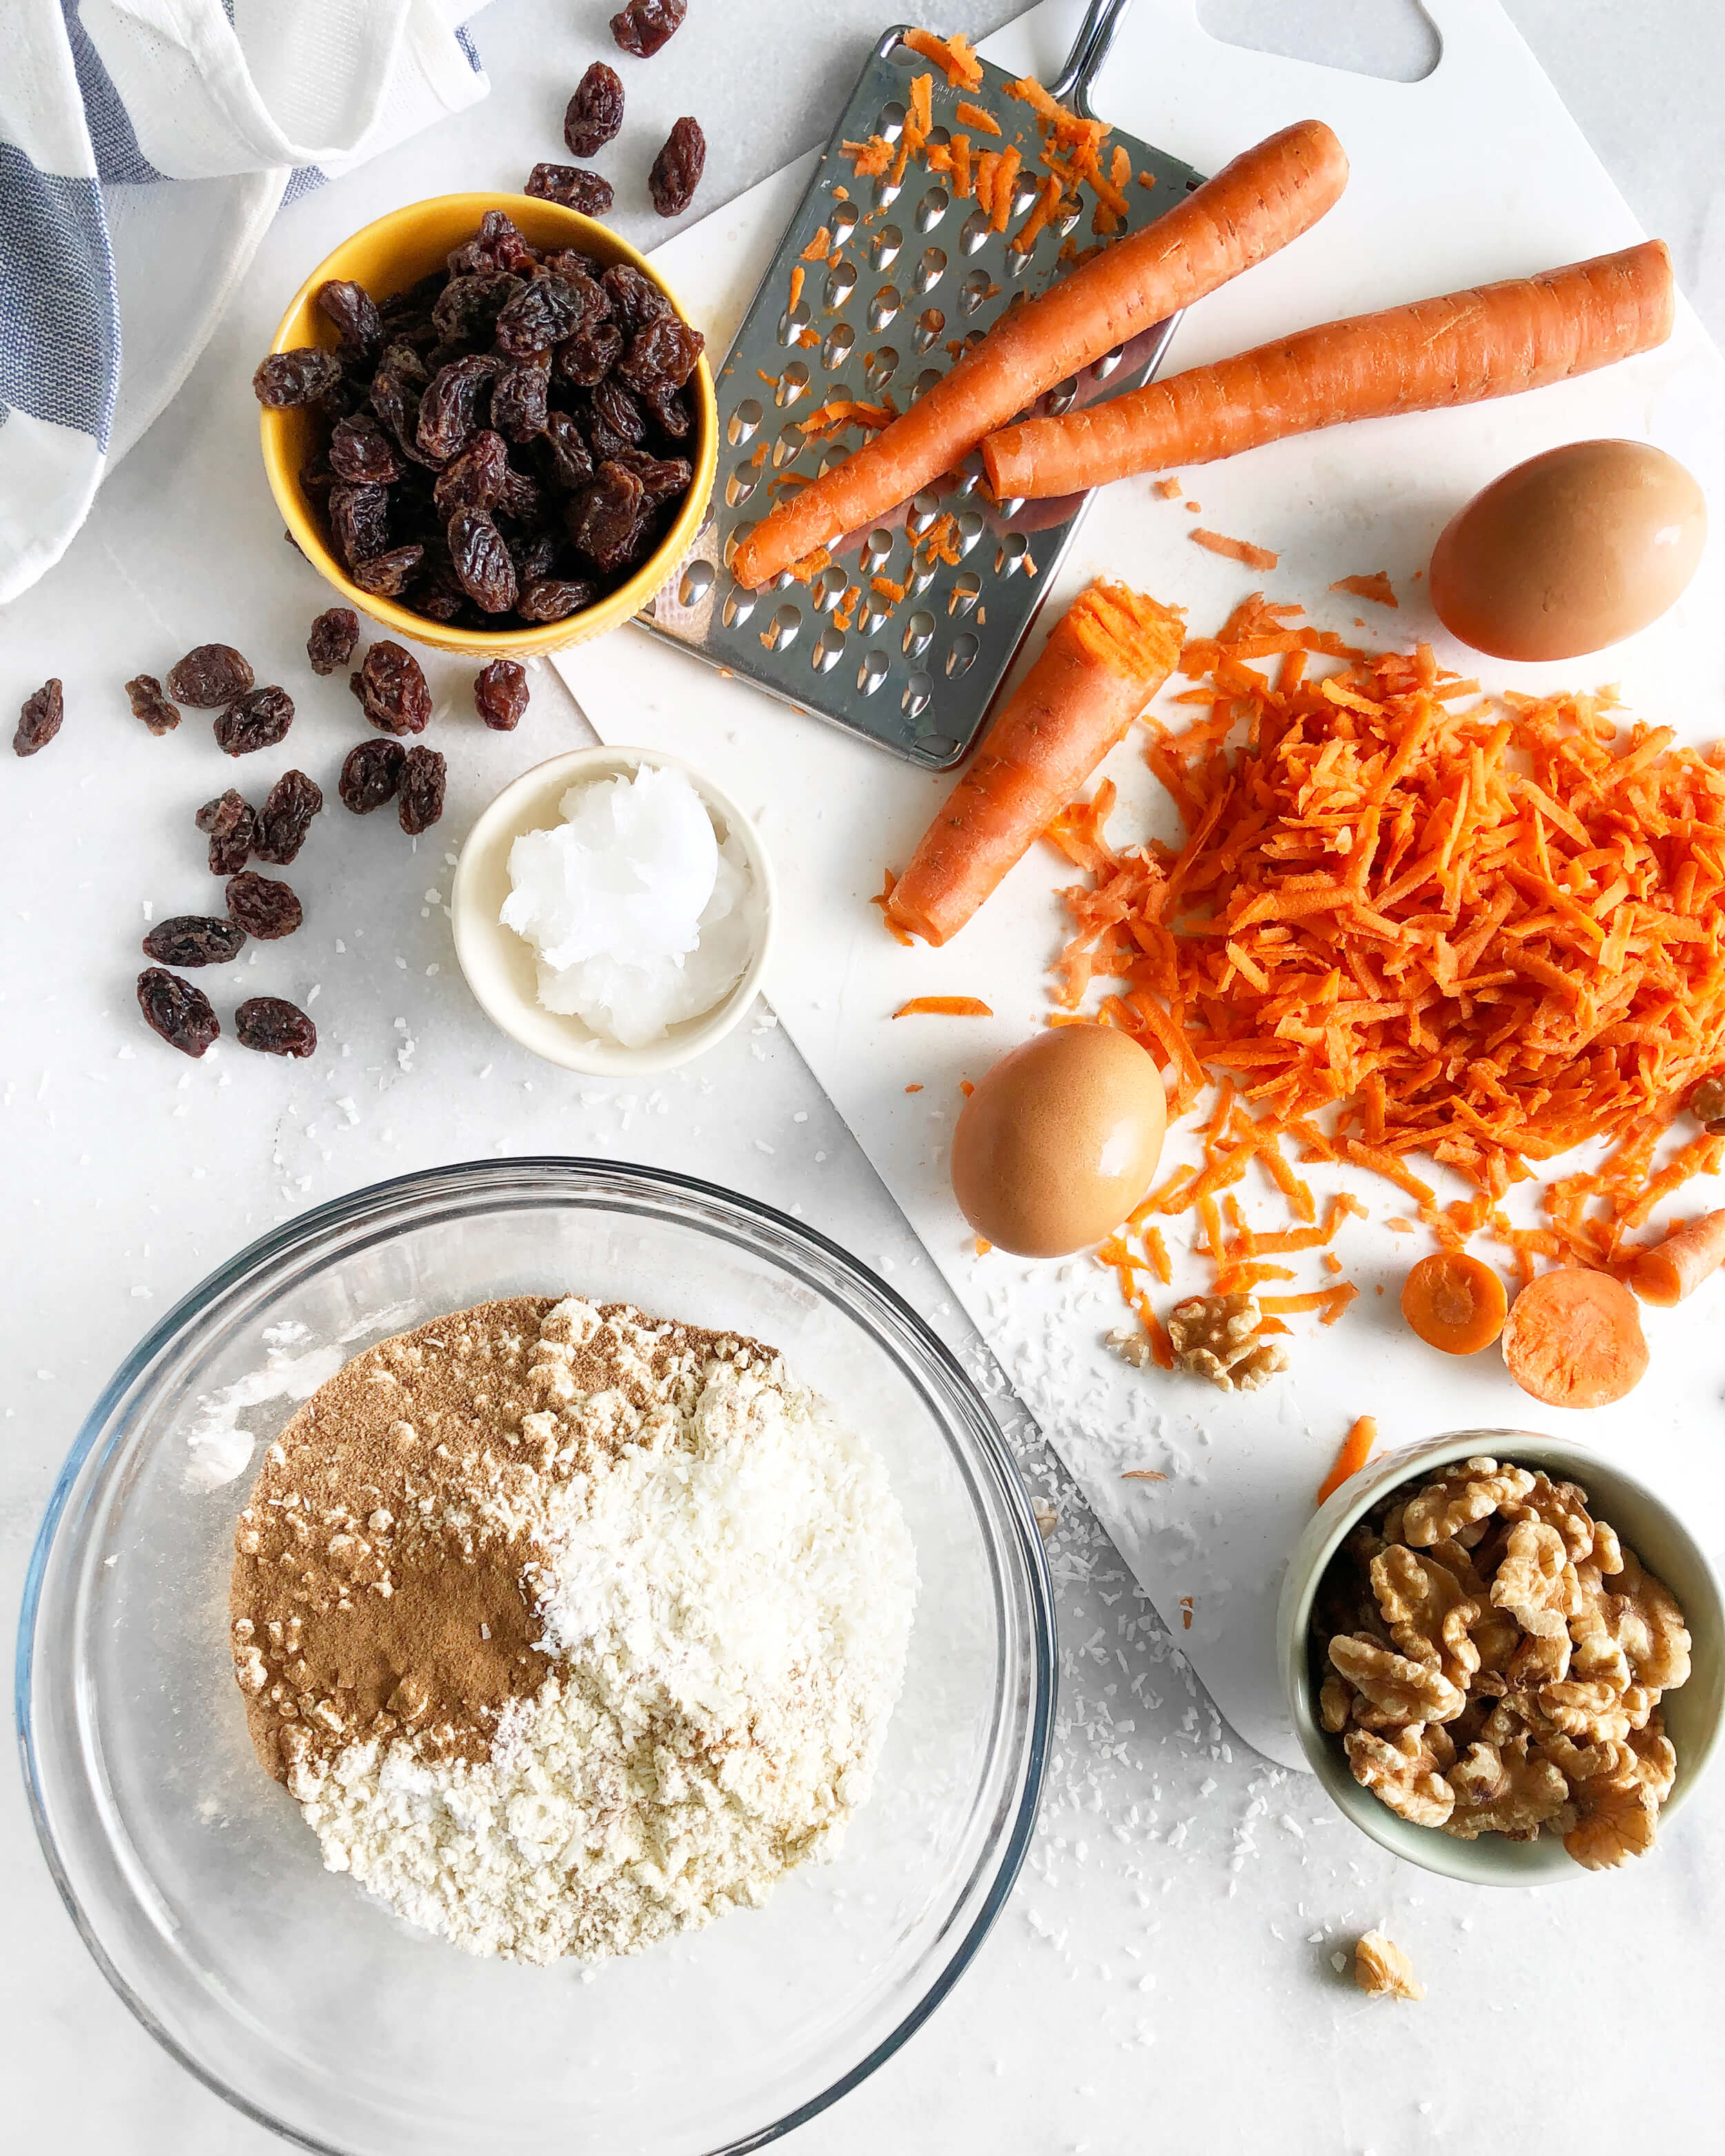 Ingredients in Carrot Cake Loaf